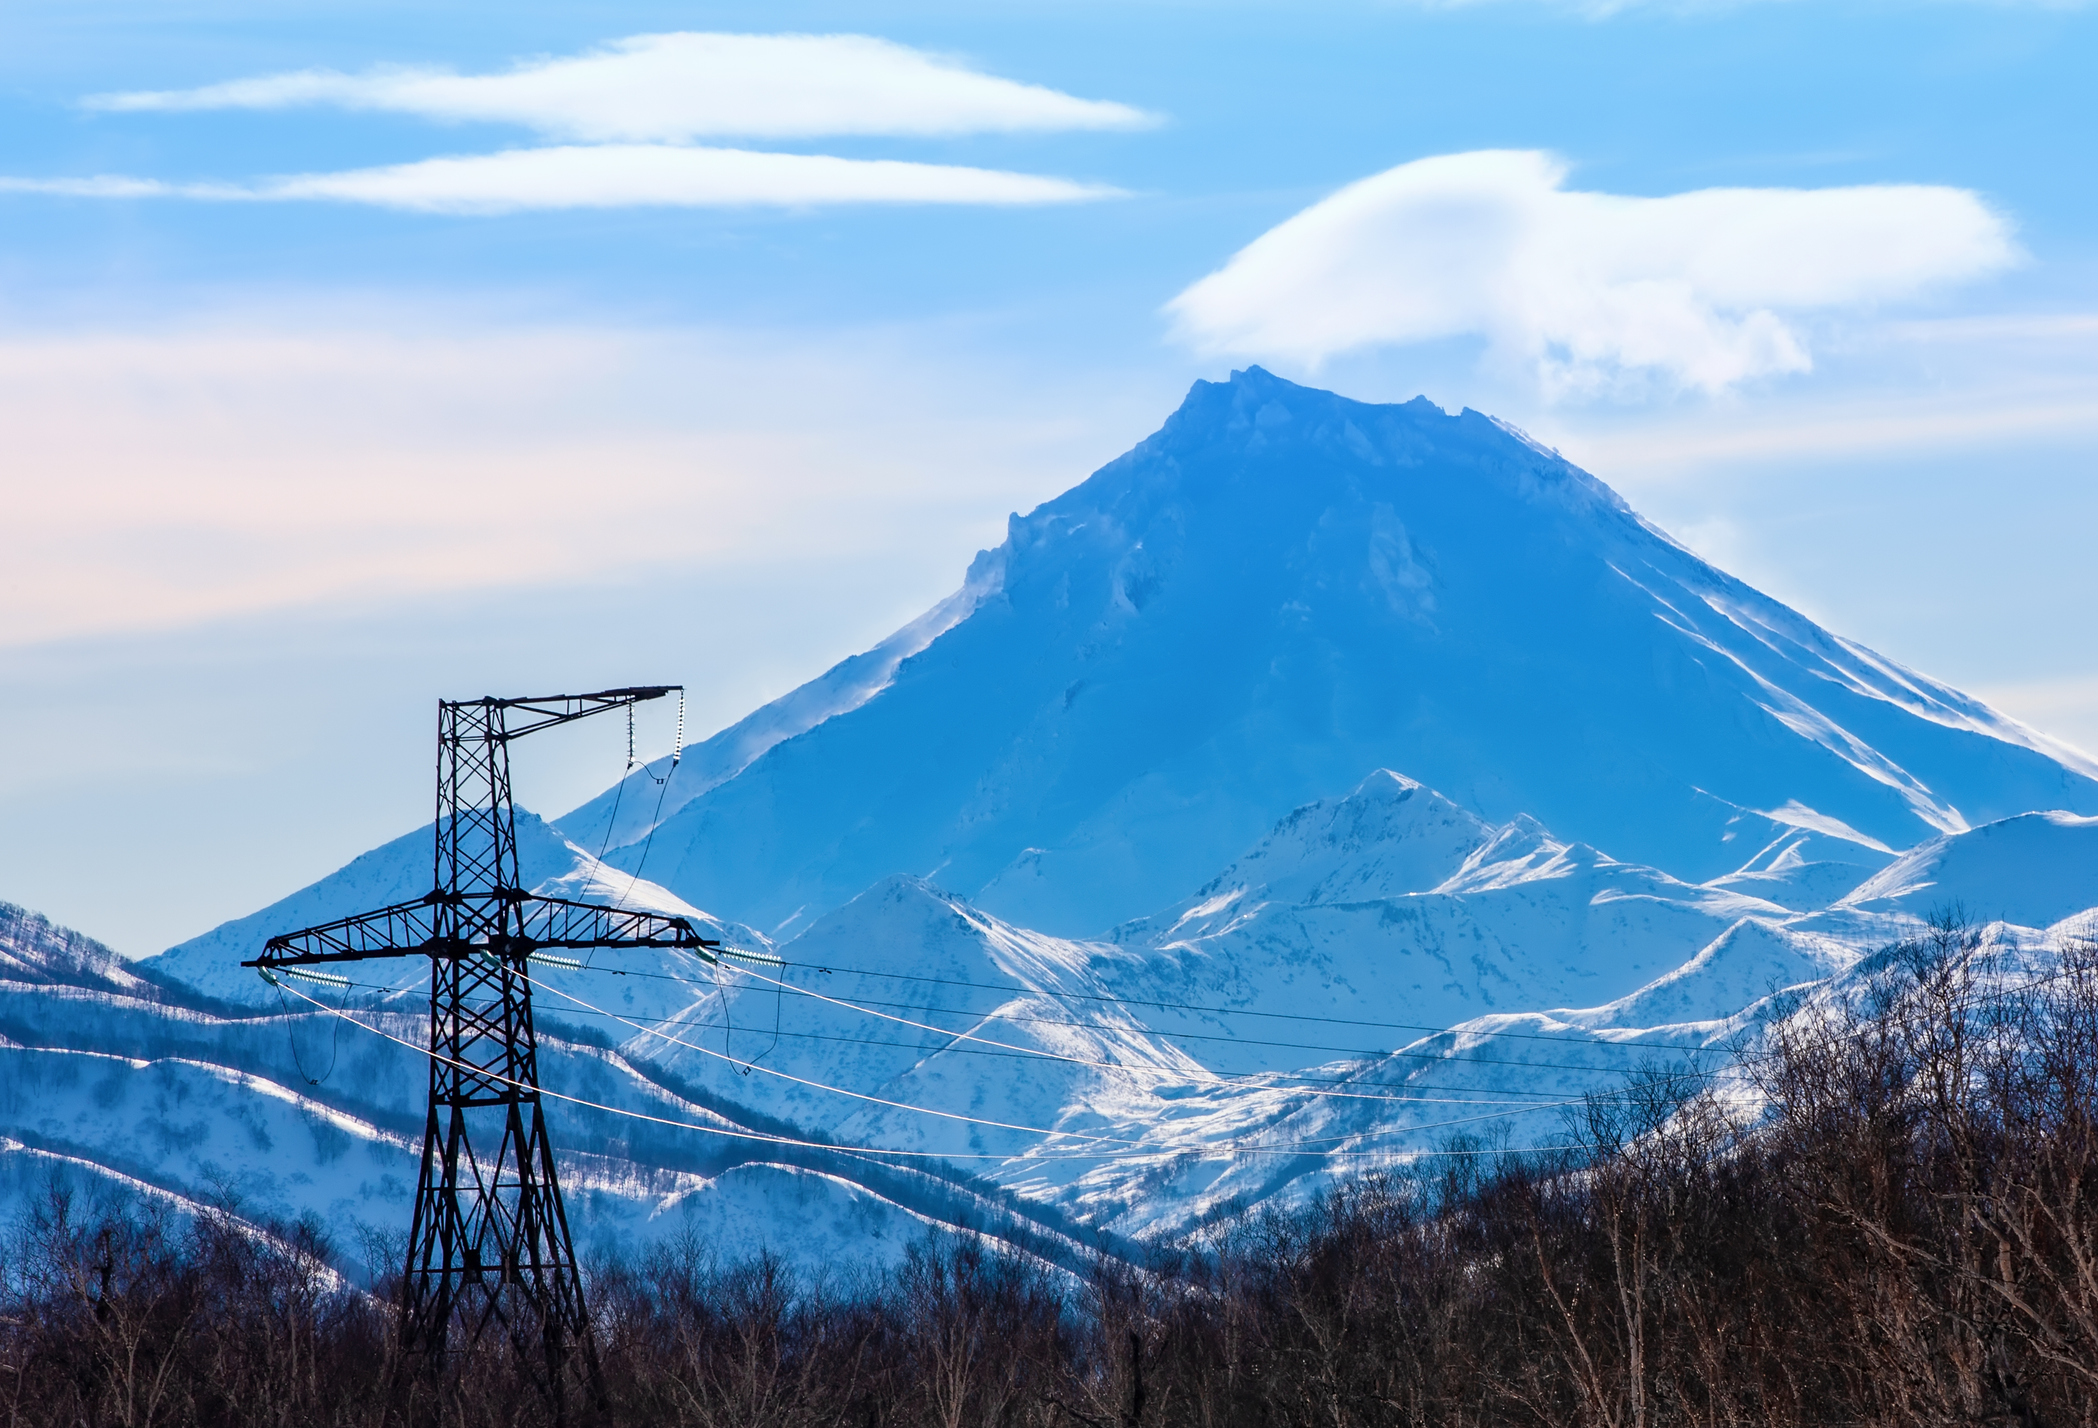 Blockstream Energy Expands Power Options for Bitcoin Mining - CoinDesk